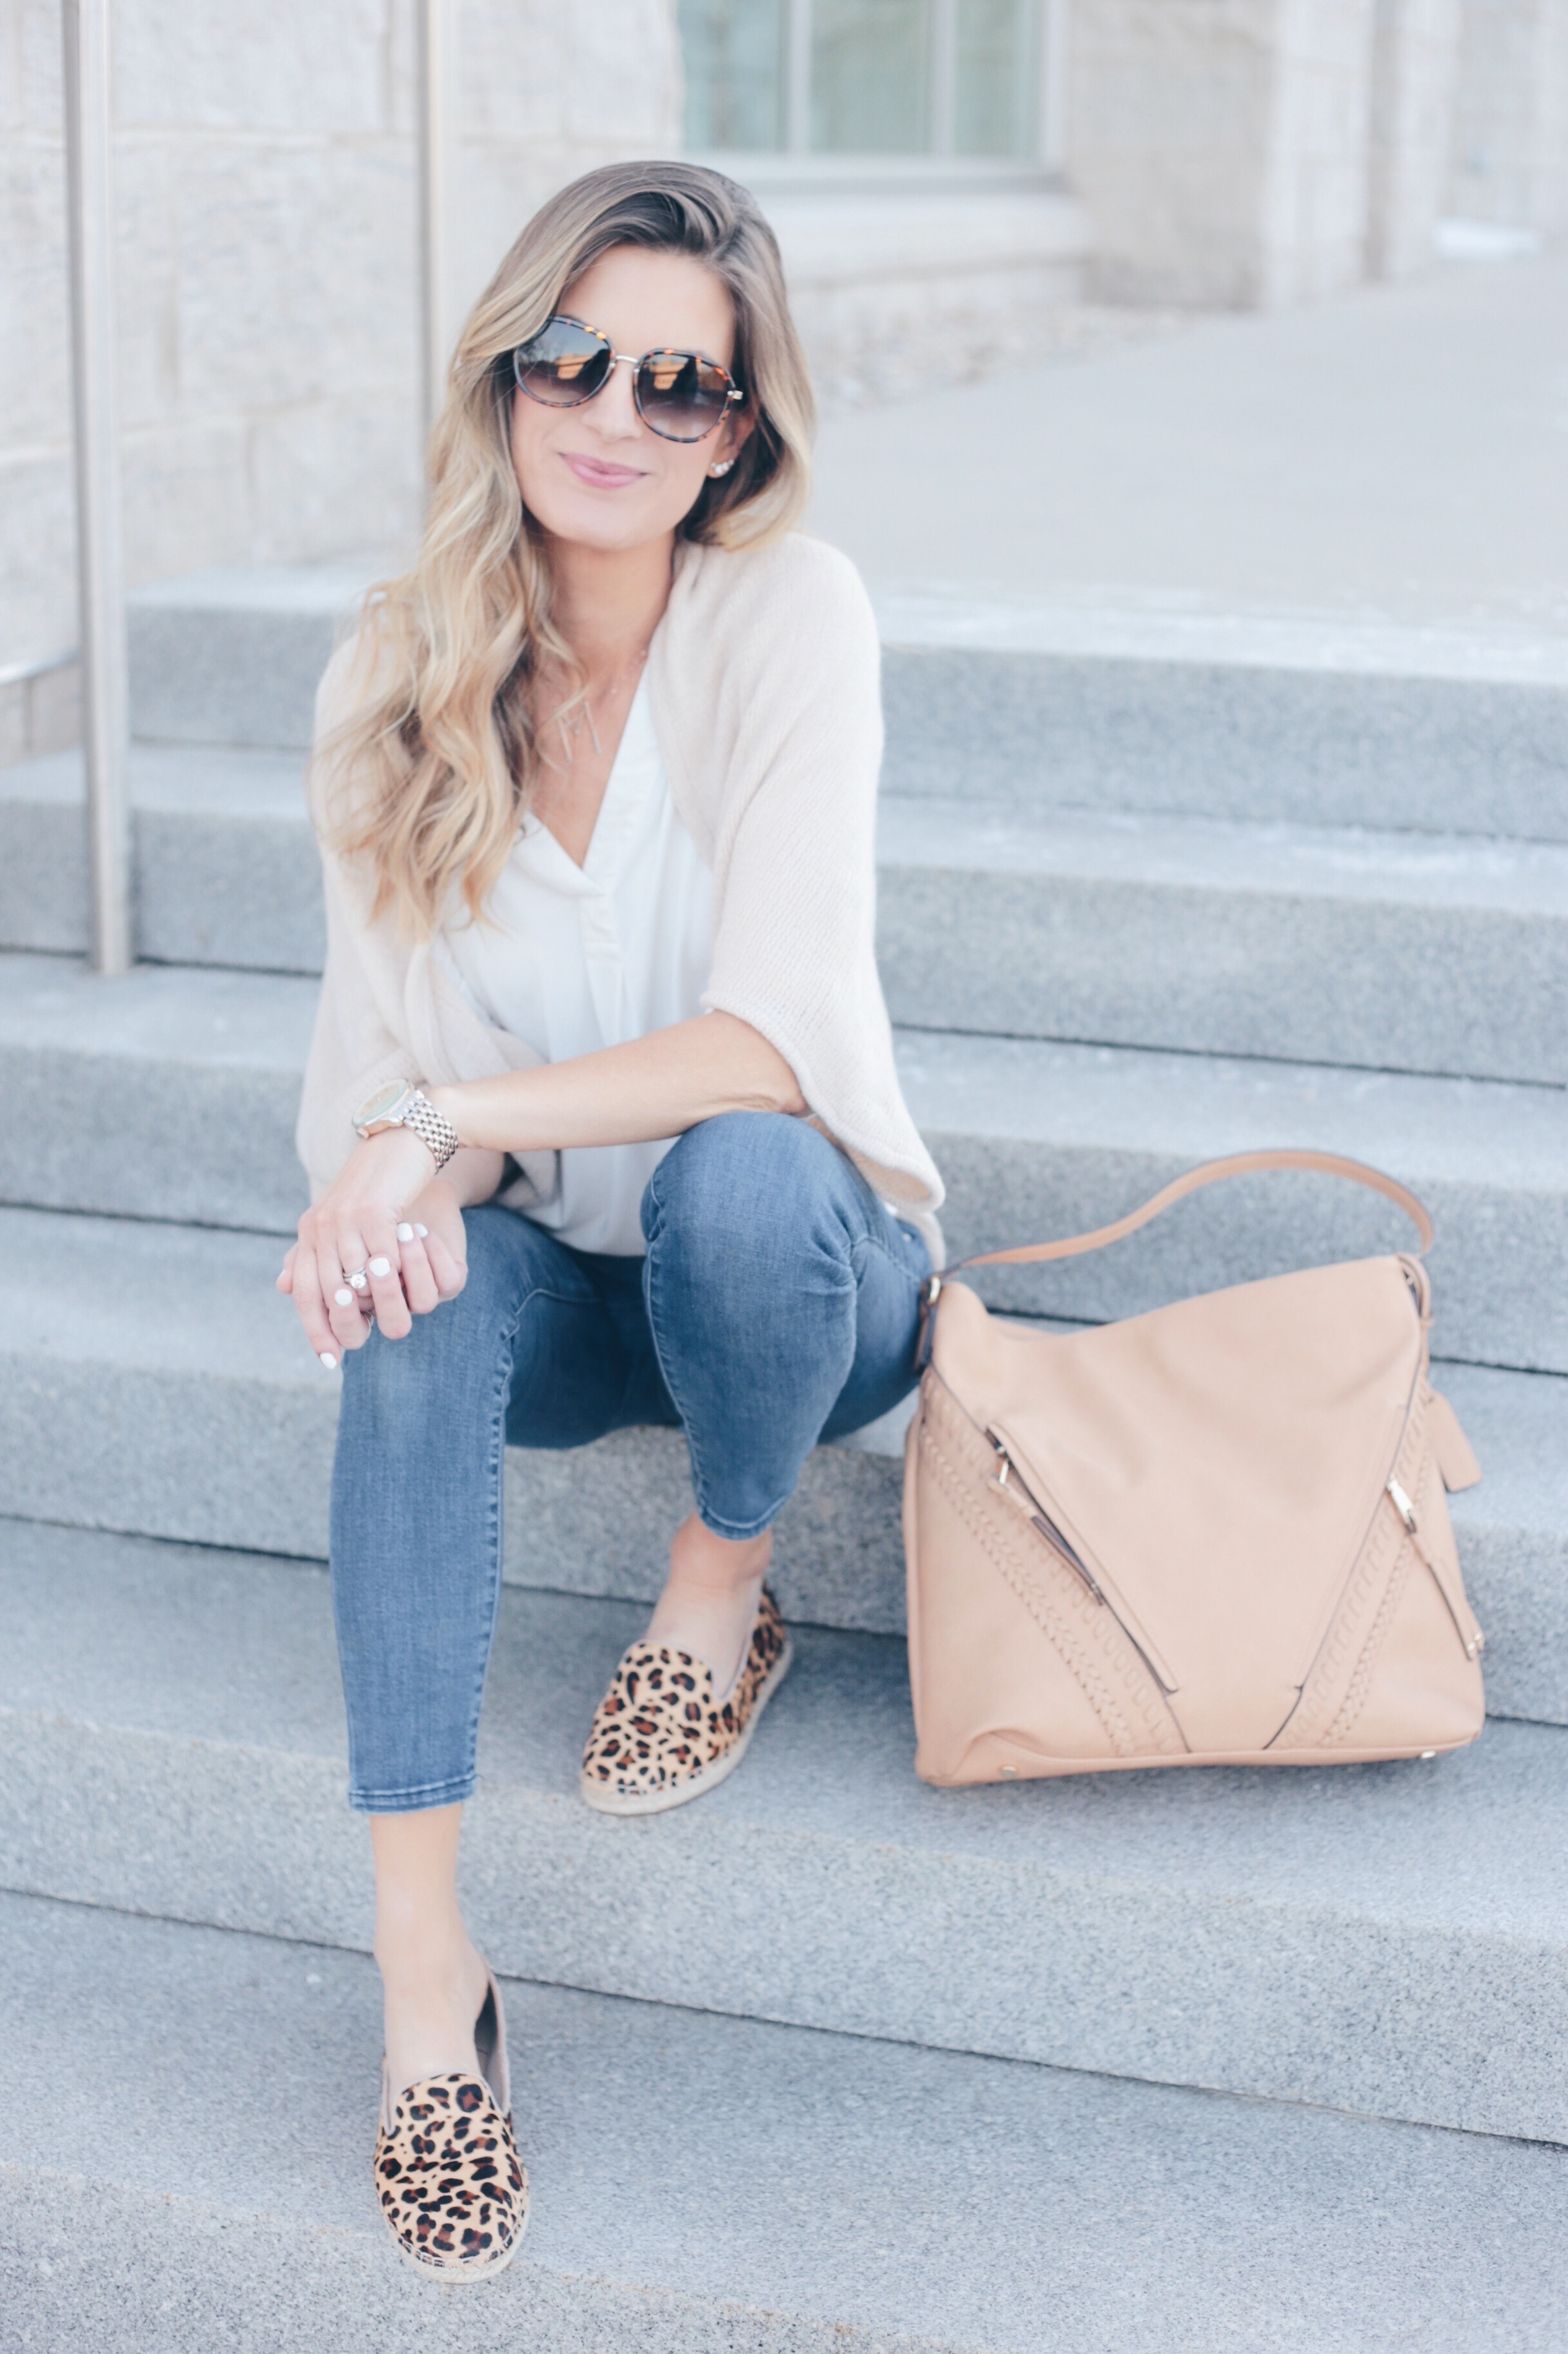 Spring Travel Outfit Inspiration   Leopard Flats